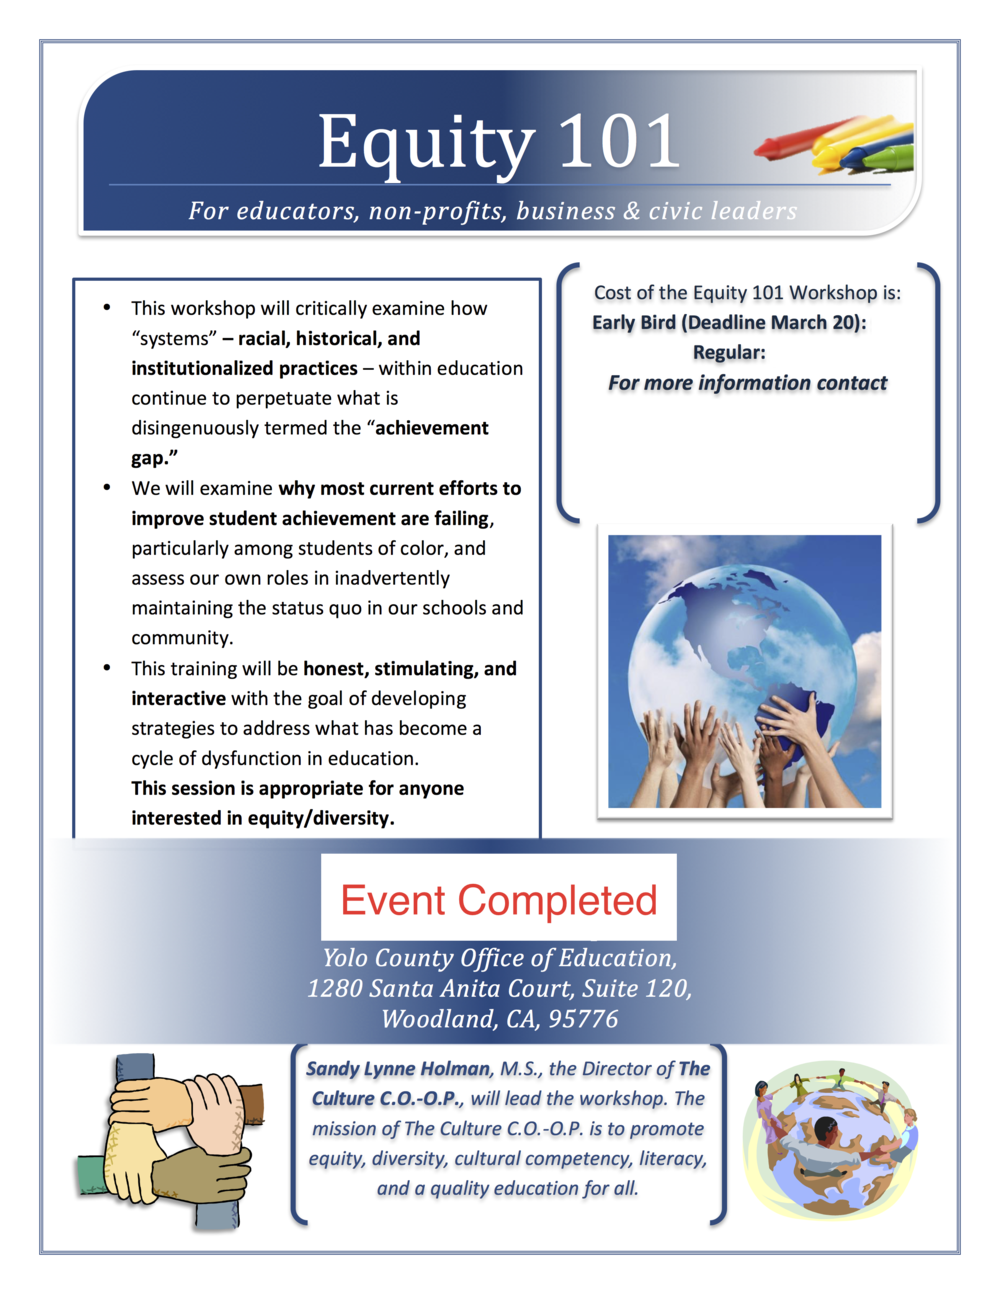 UpdatedEquity 101 Workshop Flyer wDateTime.png